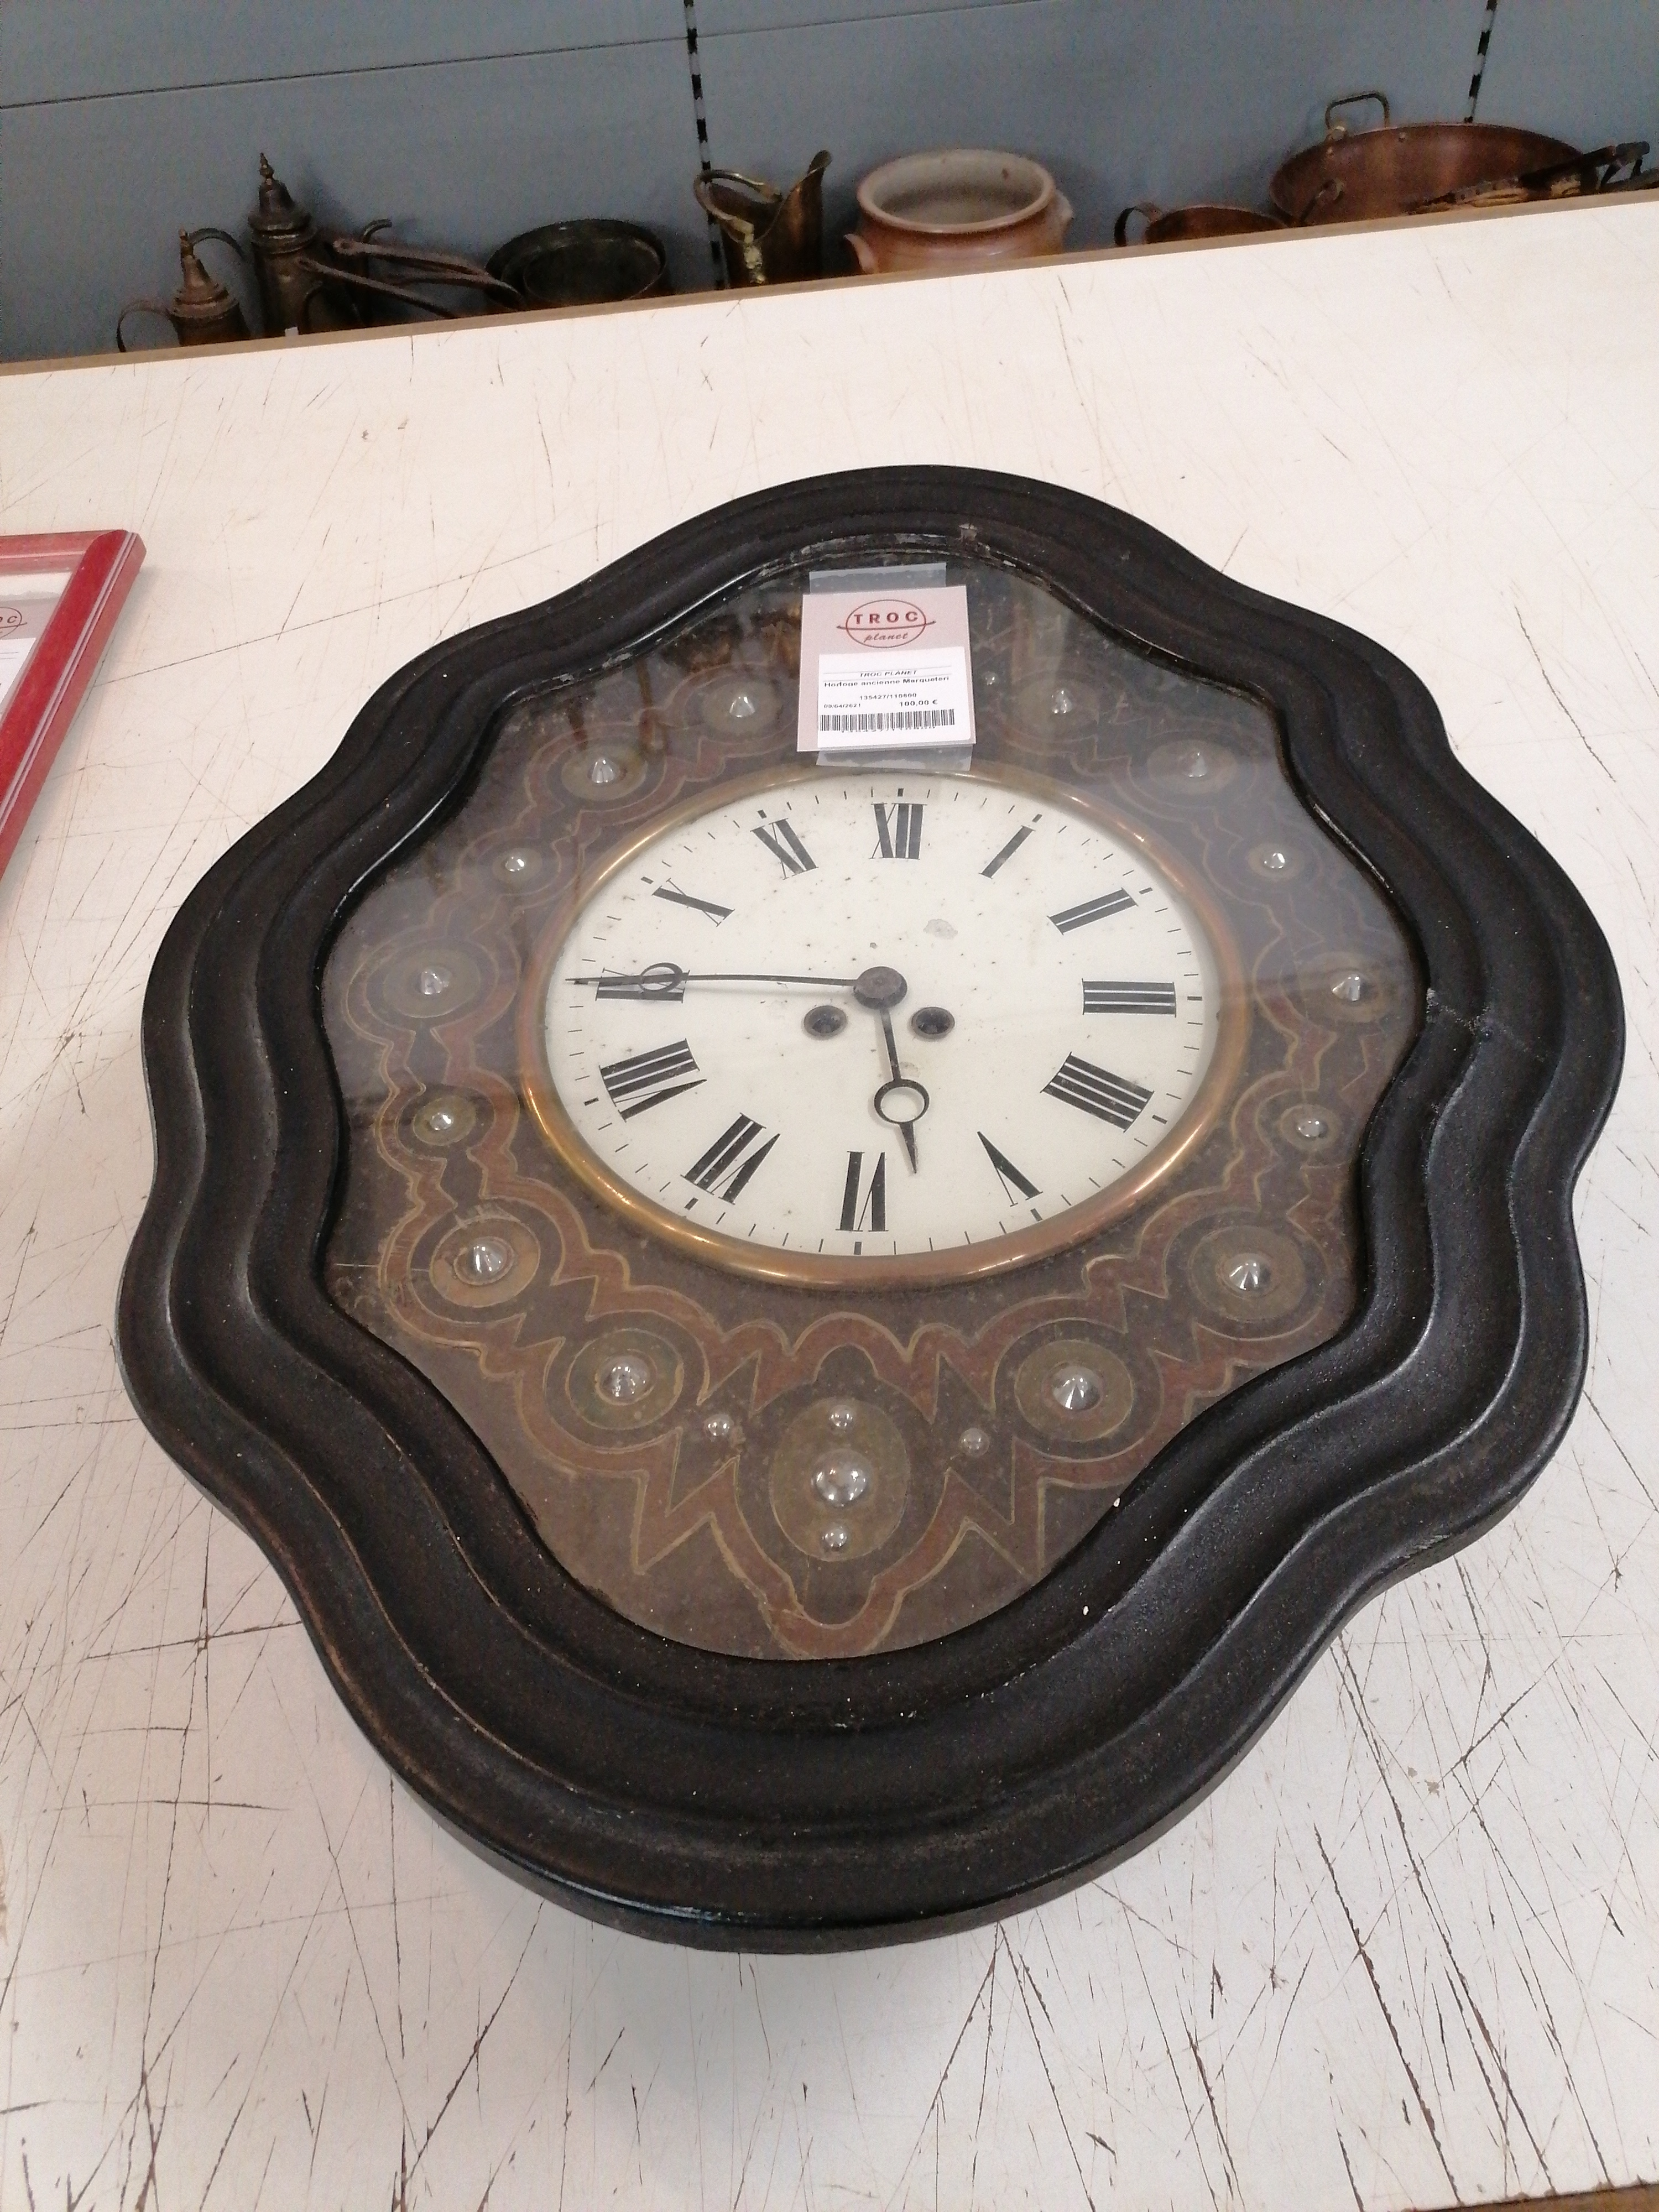 "<p>Horloge ancienne Marqueterie<br />80,00 € T.T.C<br /><a href=""/Article/110800?type=depose"" style=""color:white;"" target=""_blank"">Lien vers l&#39;article</a></p>"